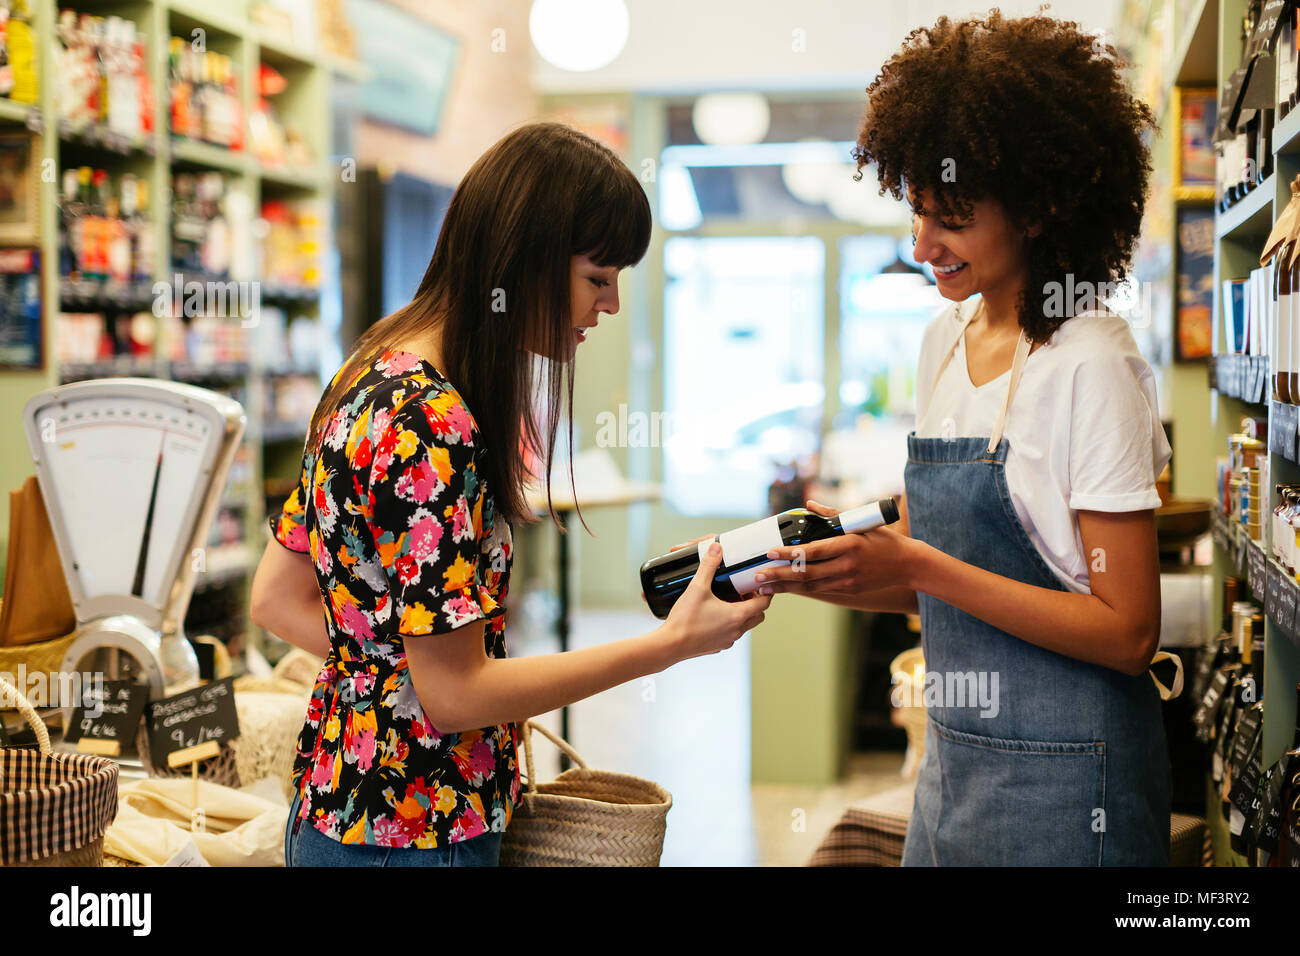 Shop assistant advising customer with wine bottle in a store - Stock Image